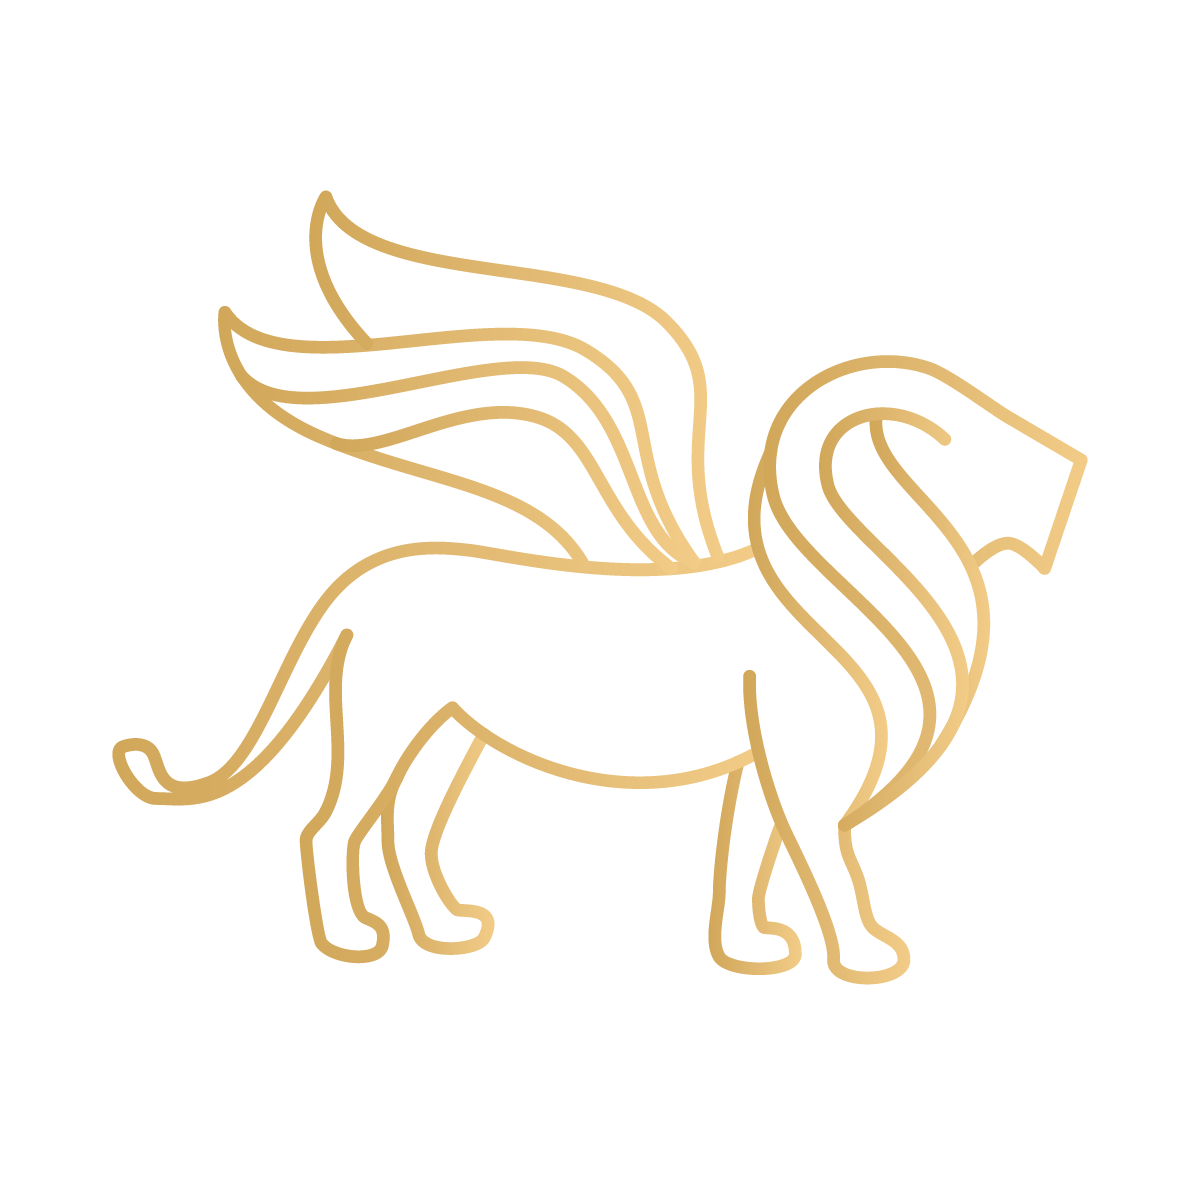 lion-gold.png